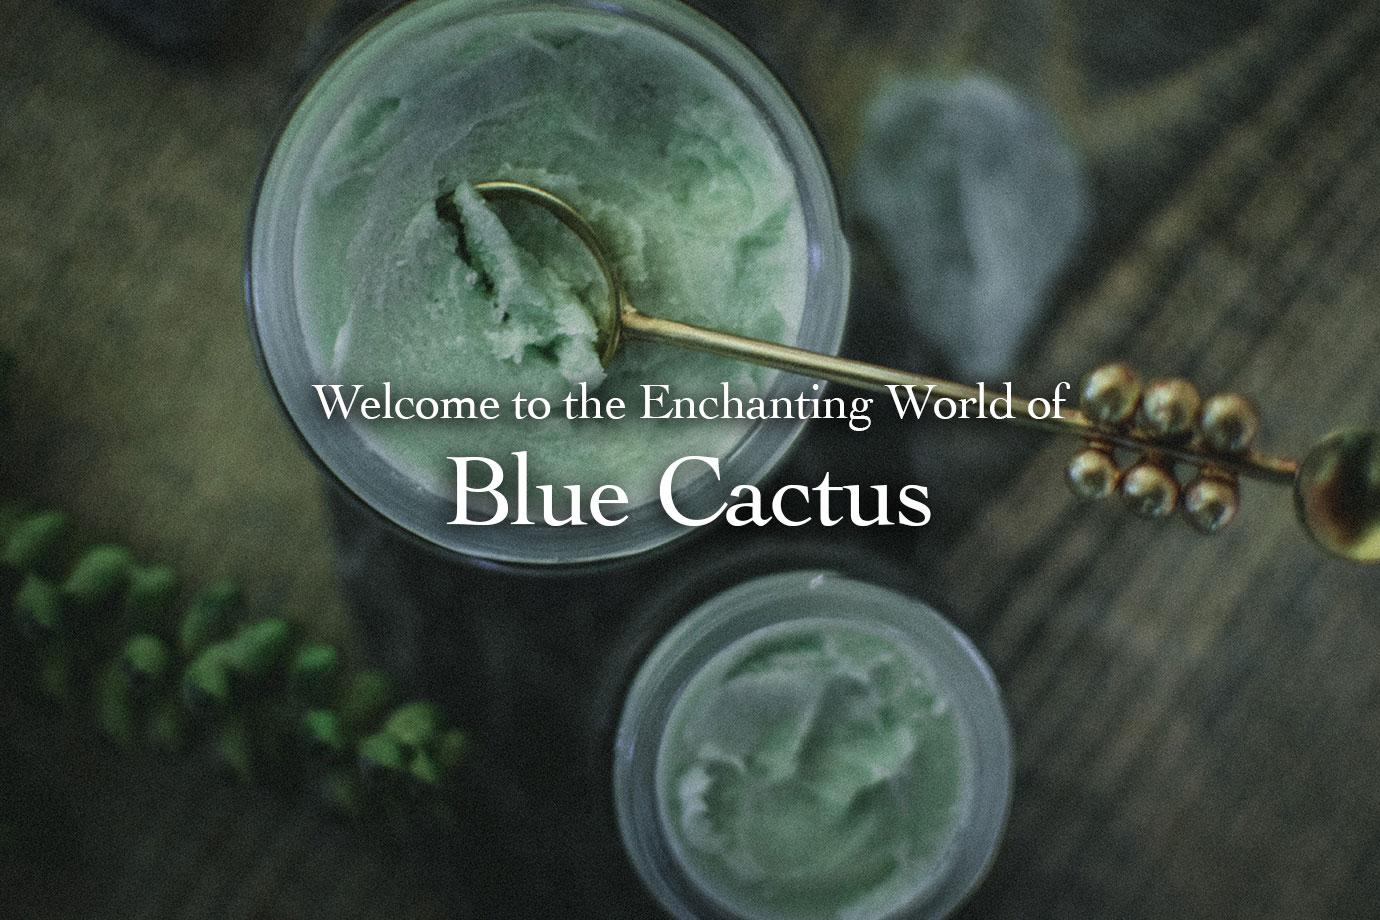 Welcome to the Enchanting World of Blue Cactus